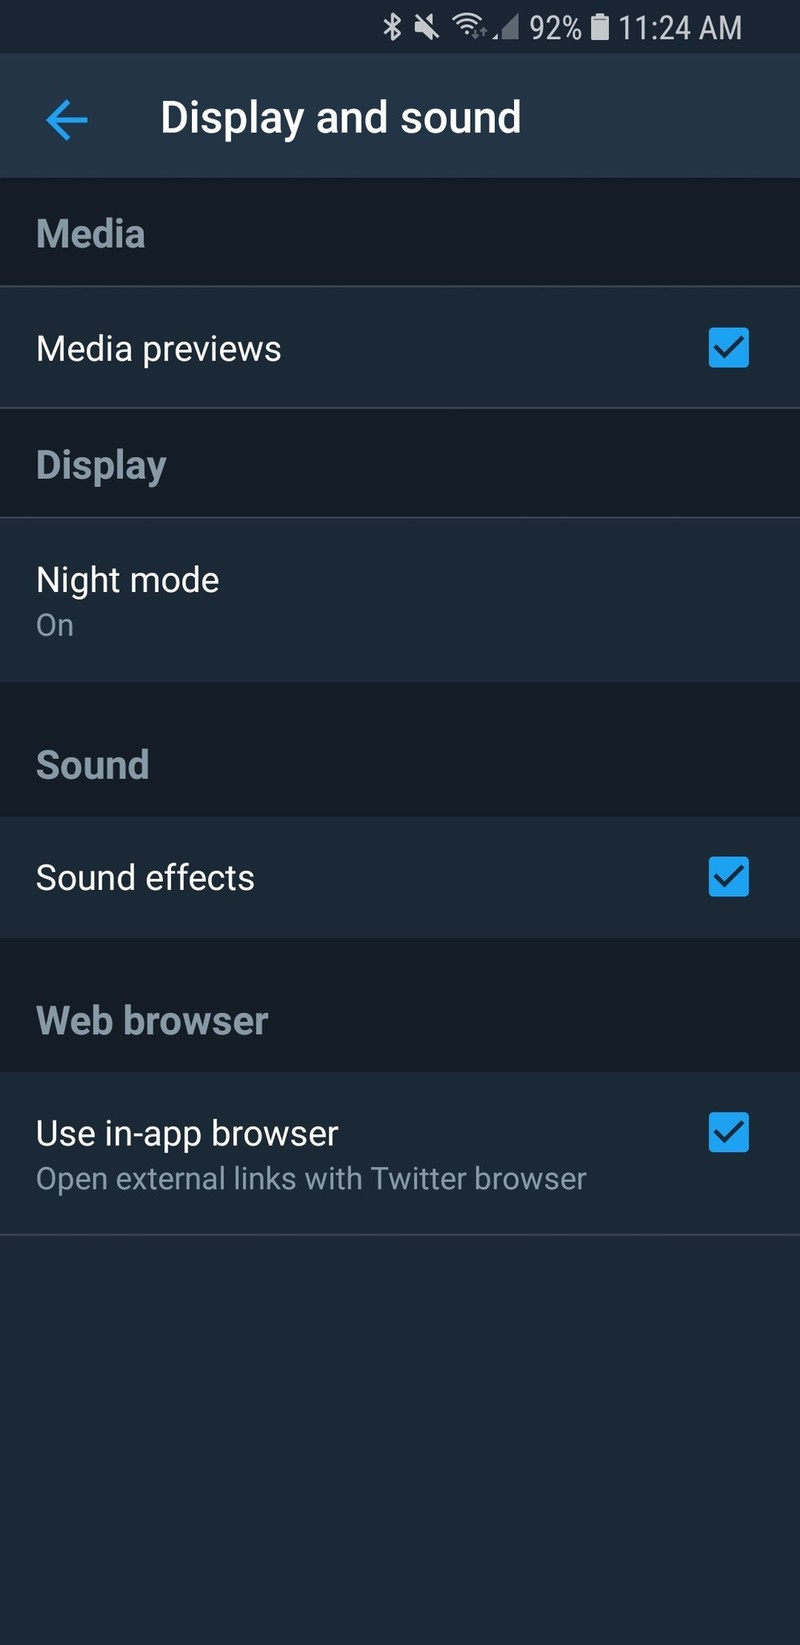 twitter-dark-mode-how-to-5.jpg?itok=uUJX